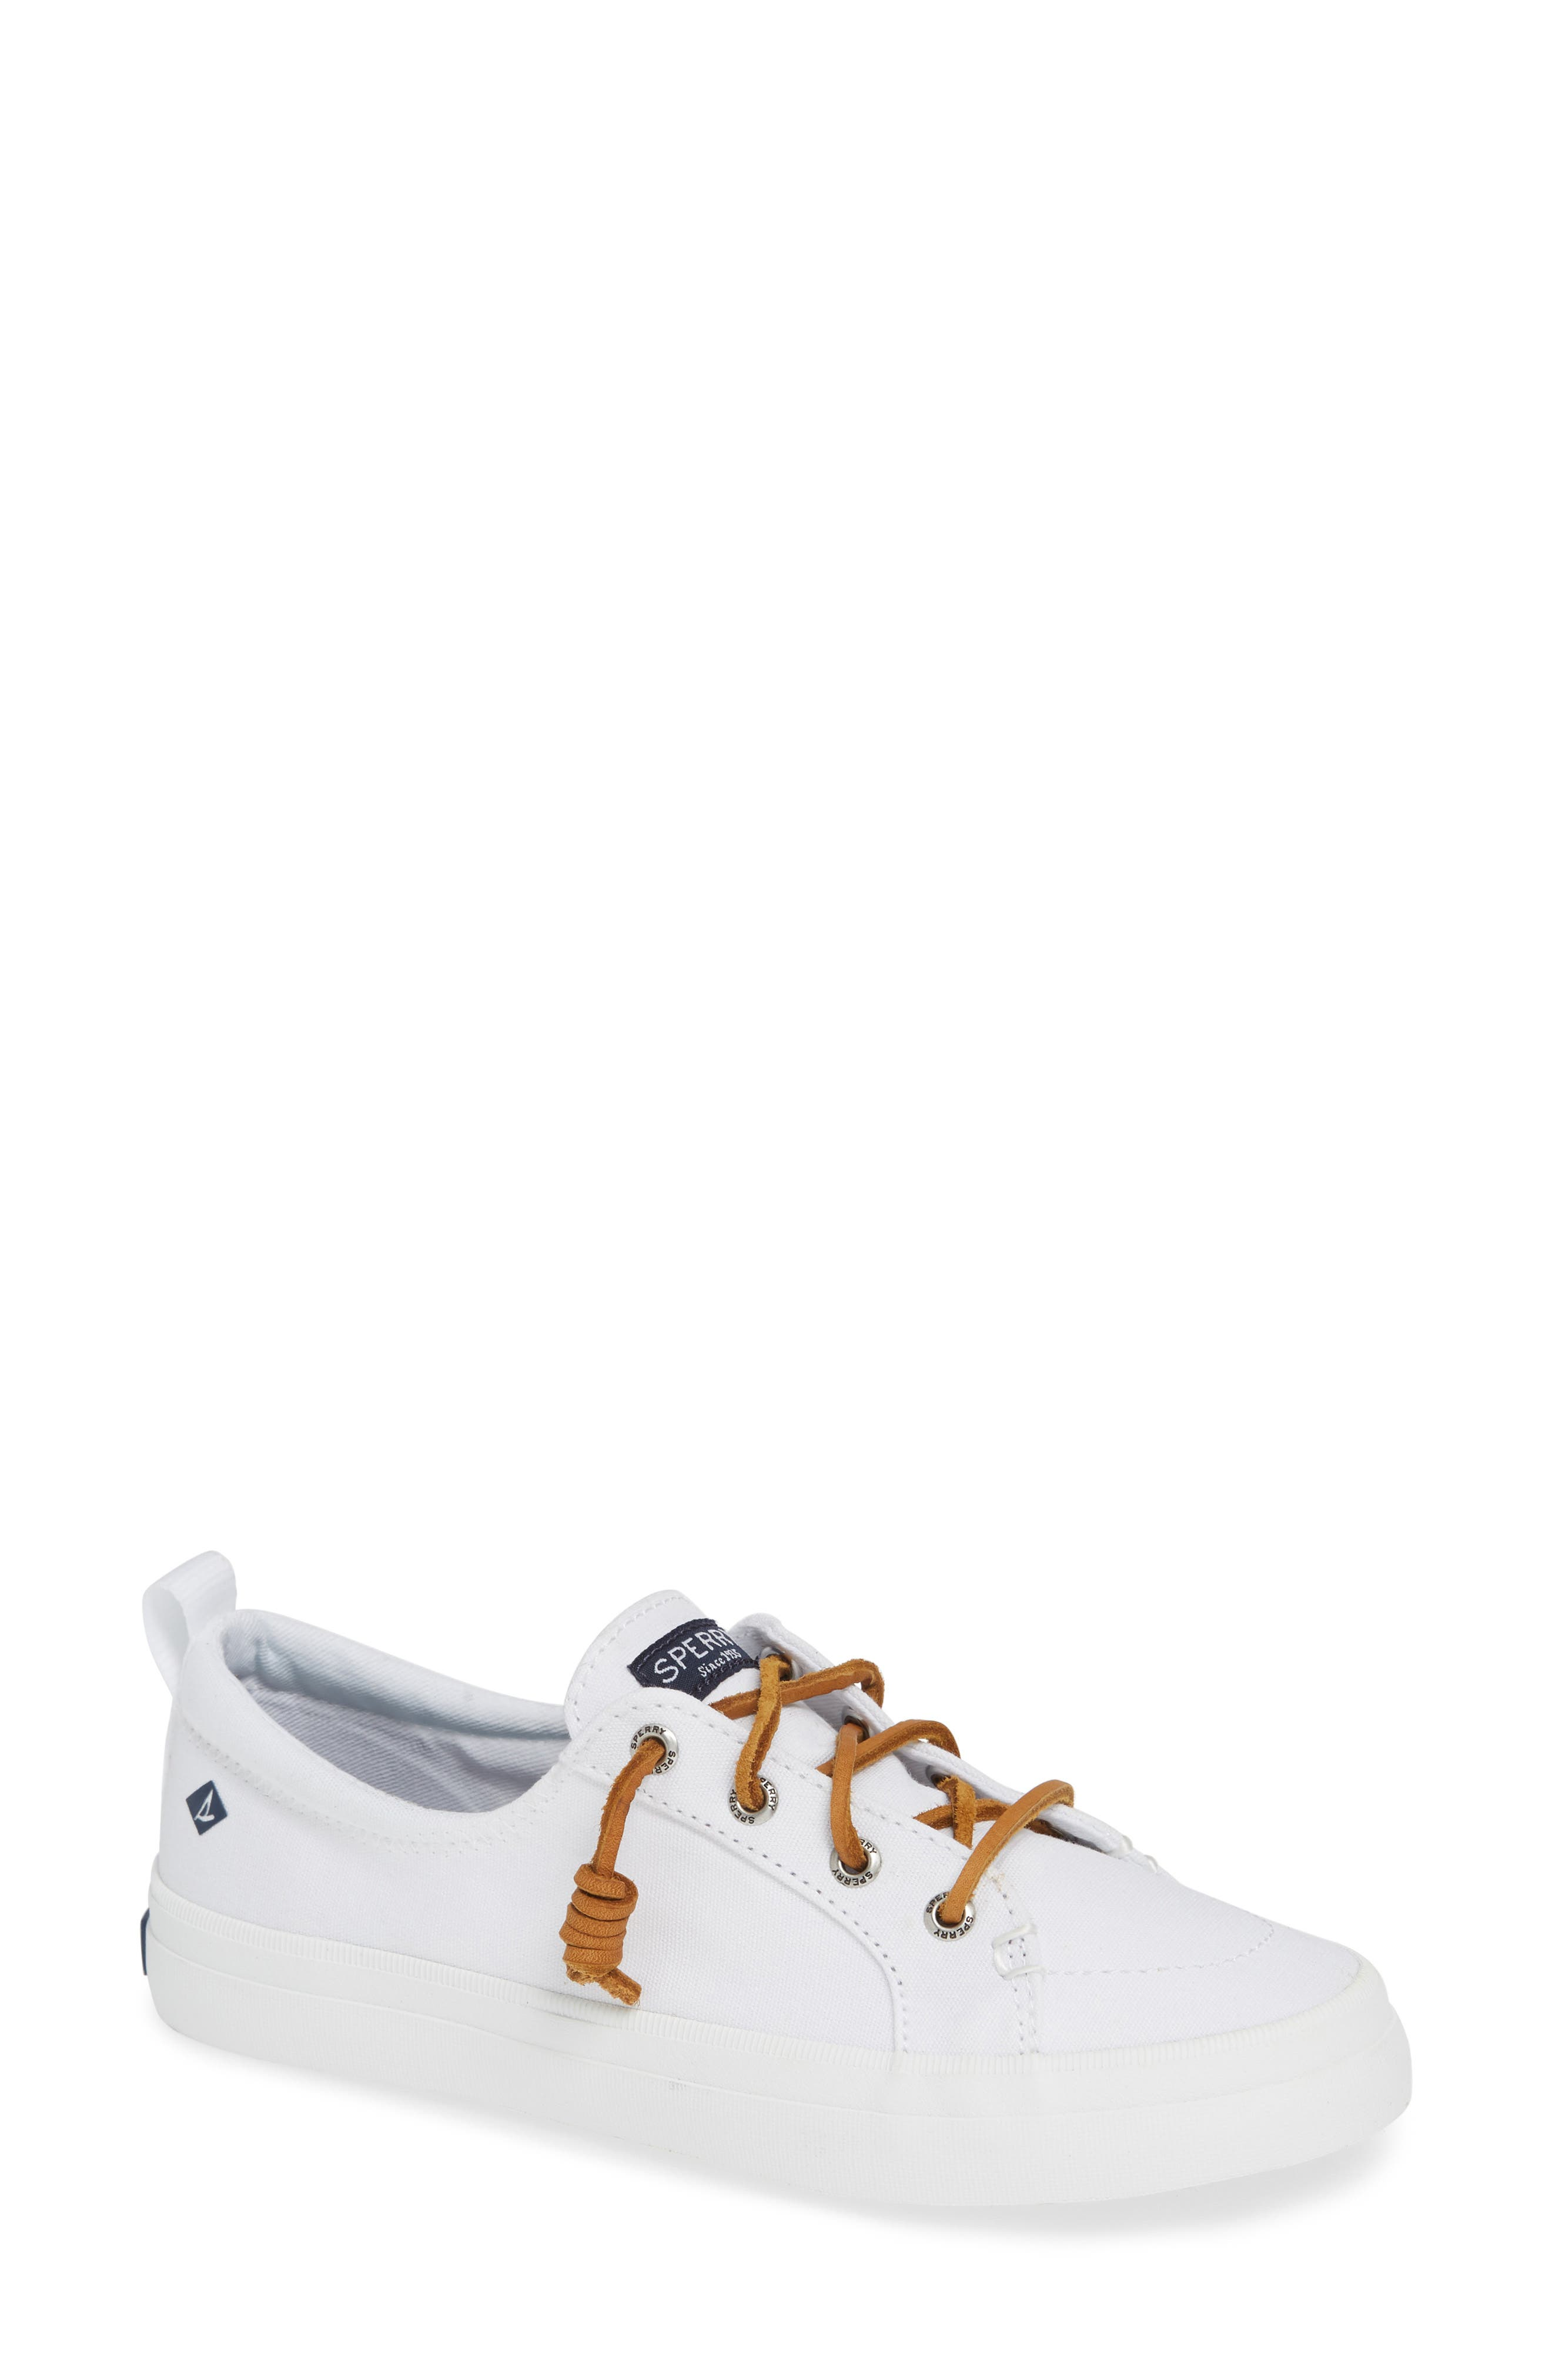 Crest Vibe Sneaker,                         Main,                         color, WHITE